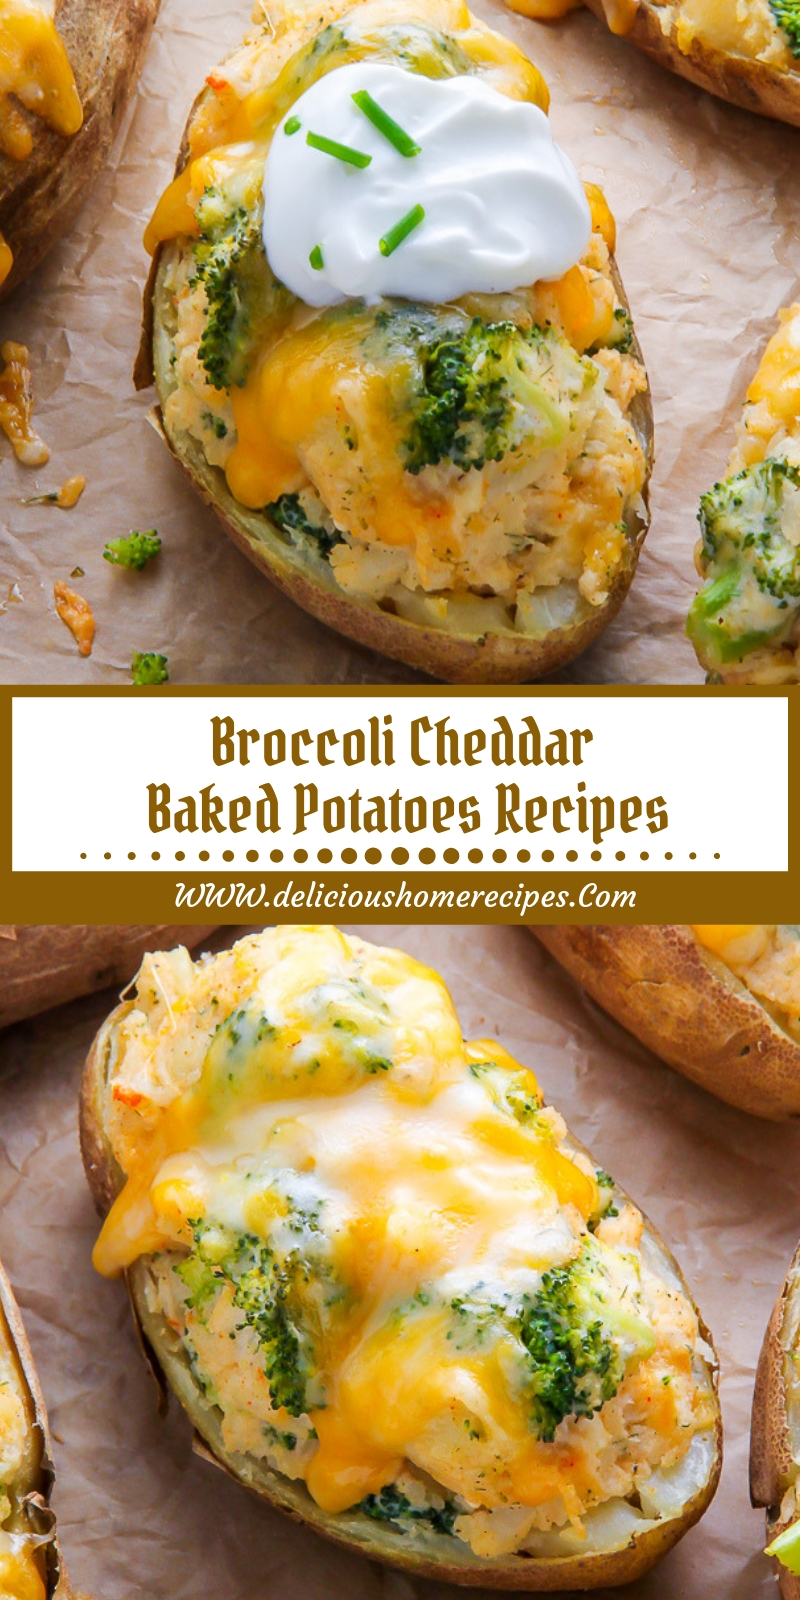 Broccoli Cheddar Baked Potatoes Recipes